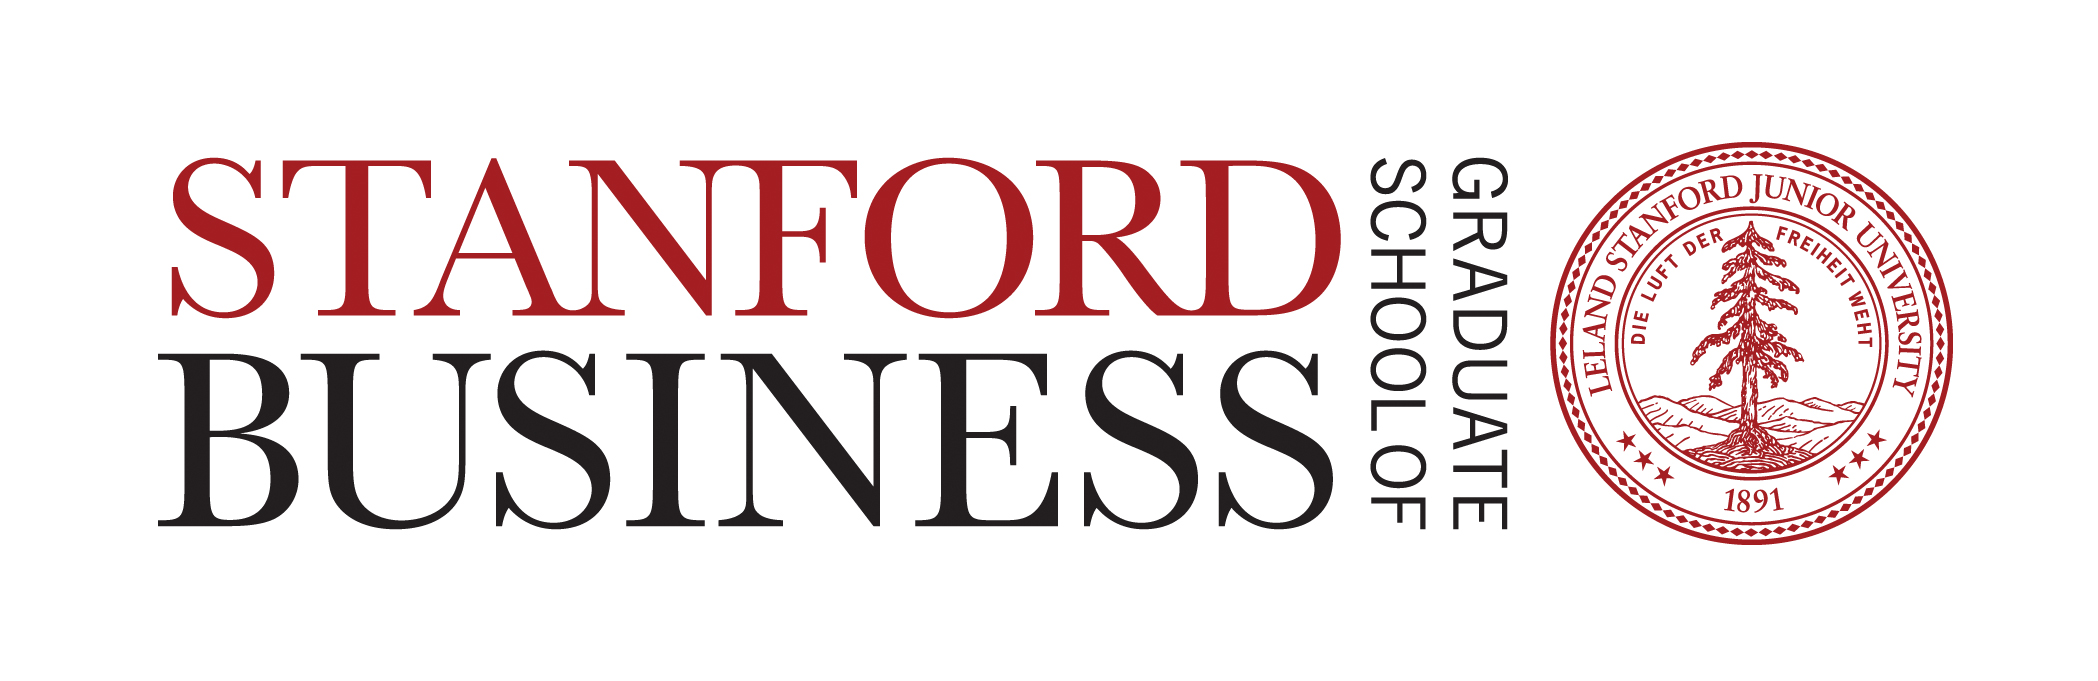 stanford essays mba